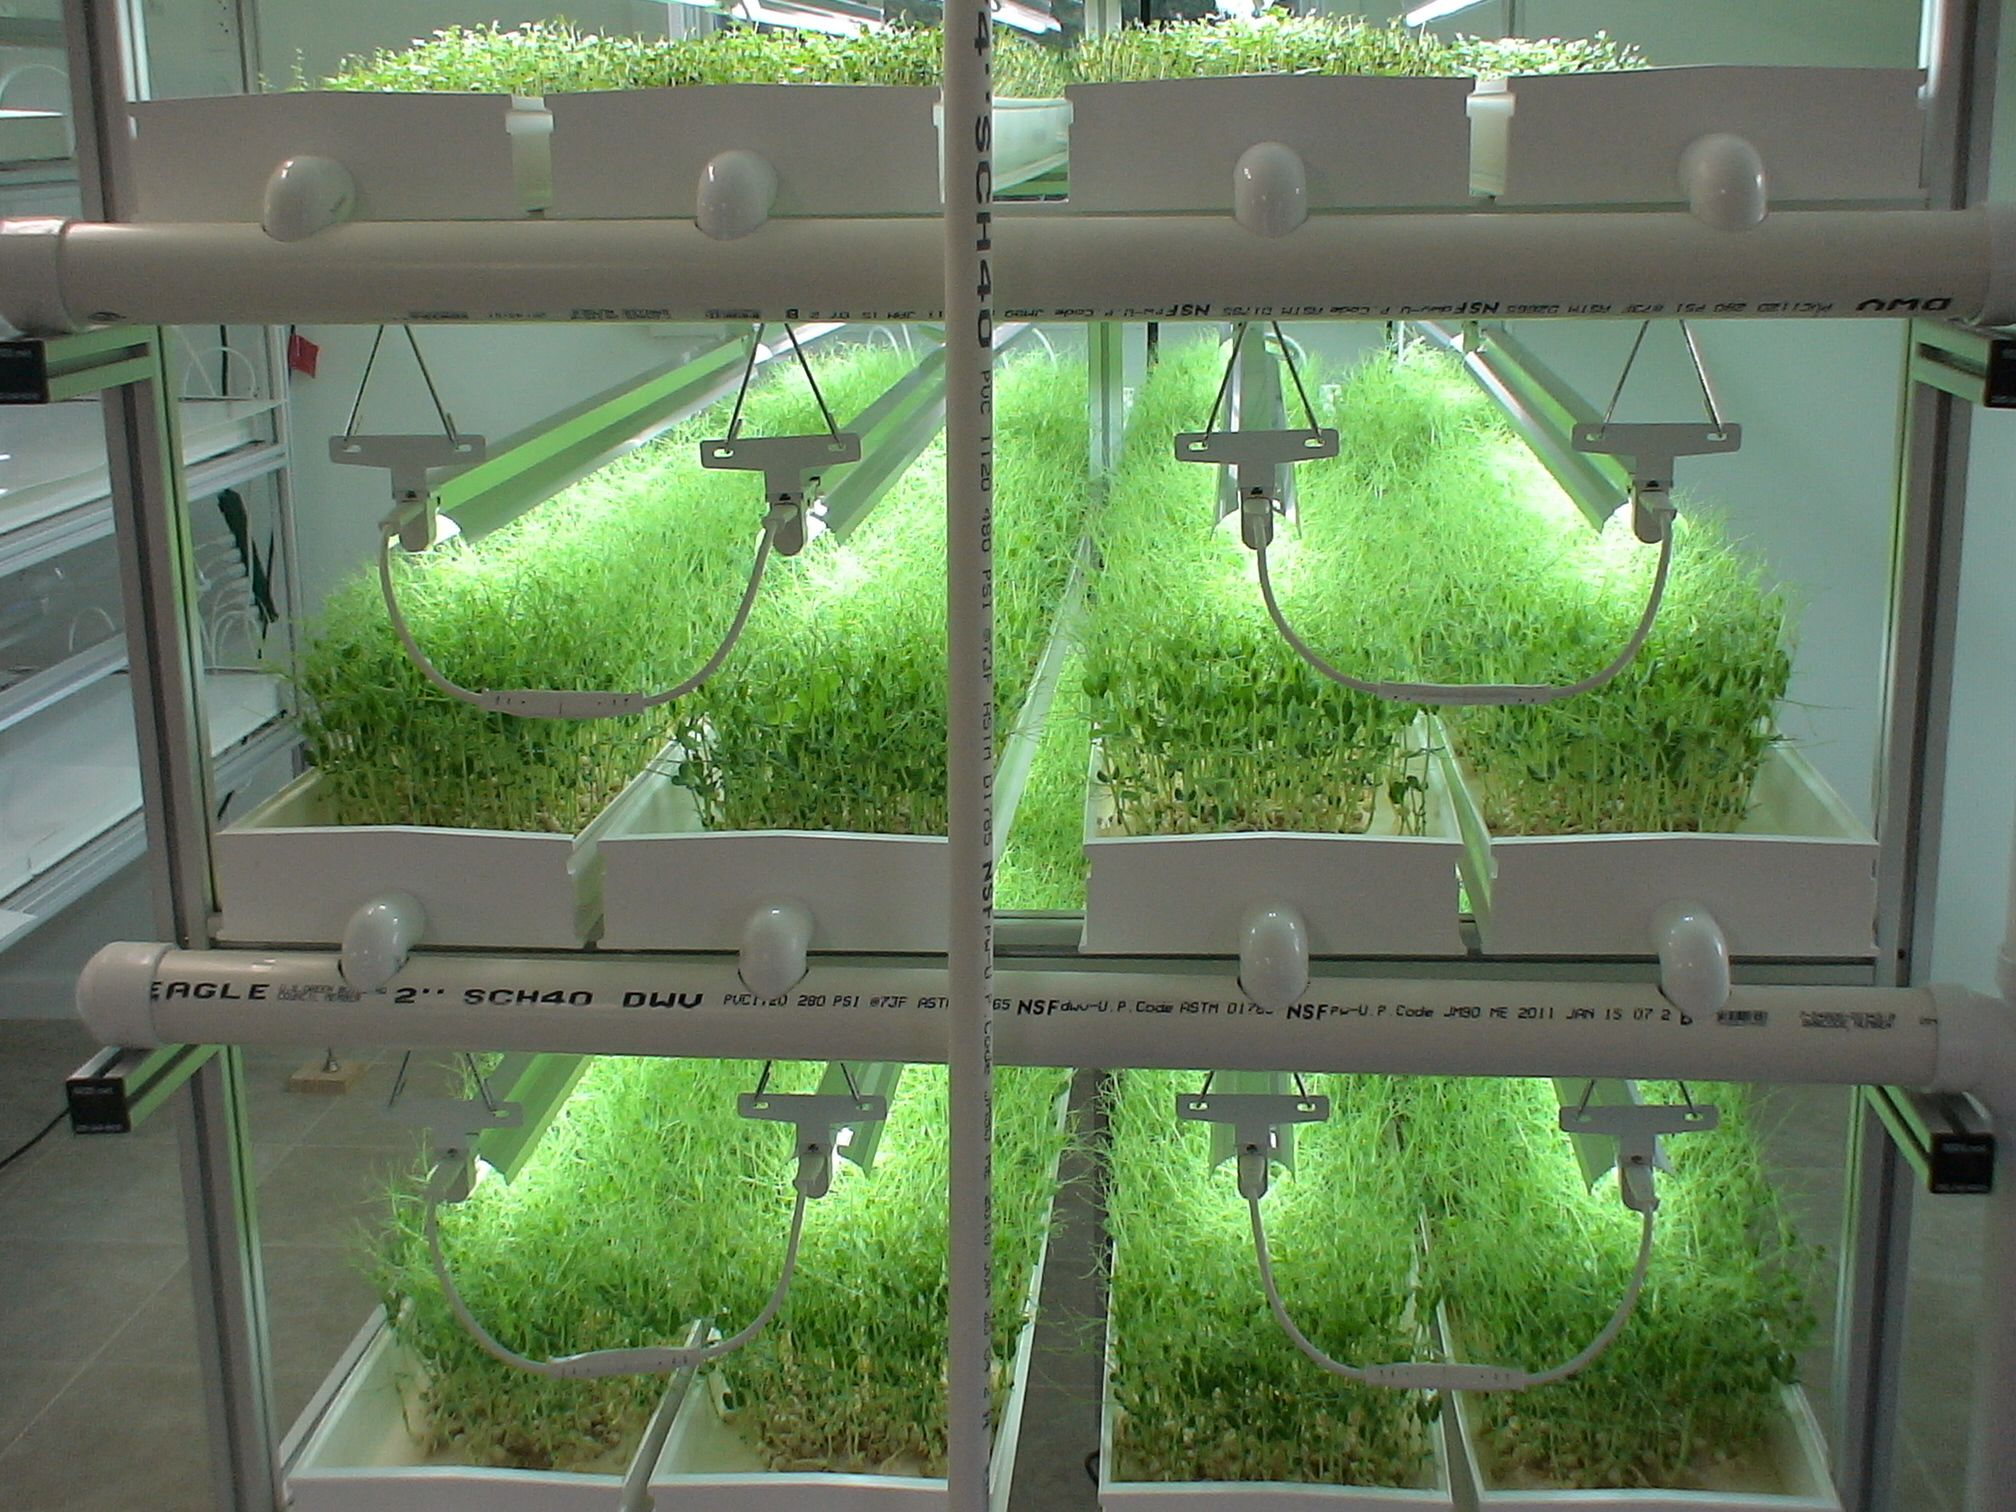 Microgreens in nft hydroponic system hydroponic systems for Best growing medium for microgreens